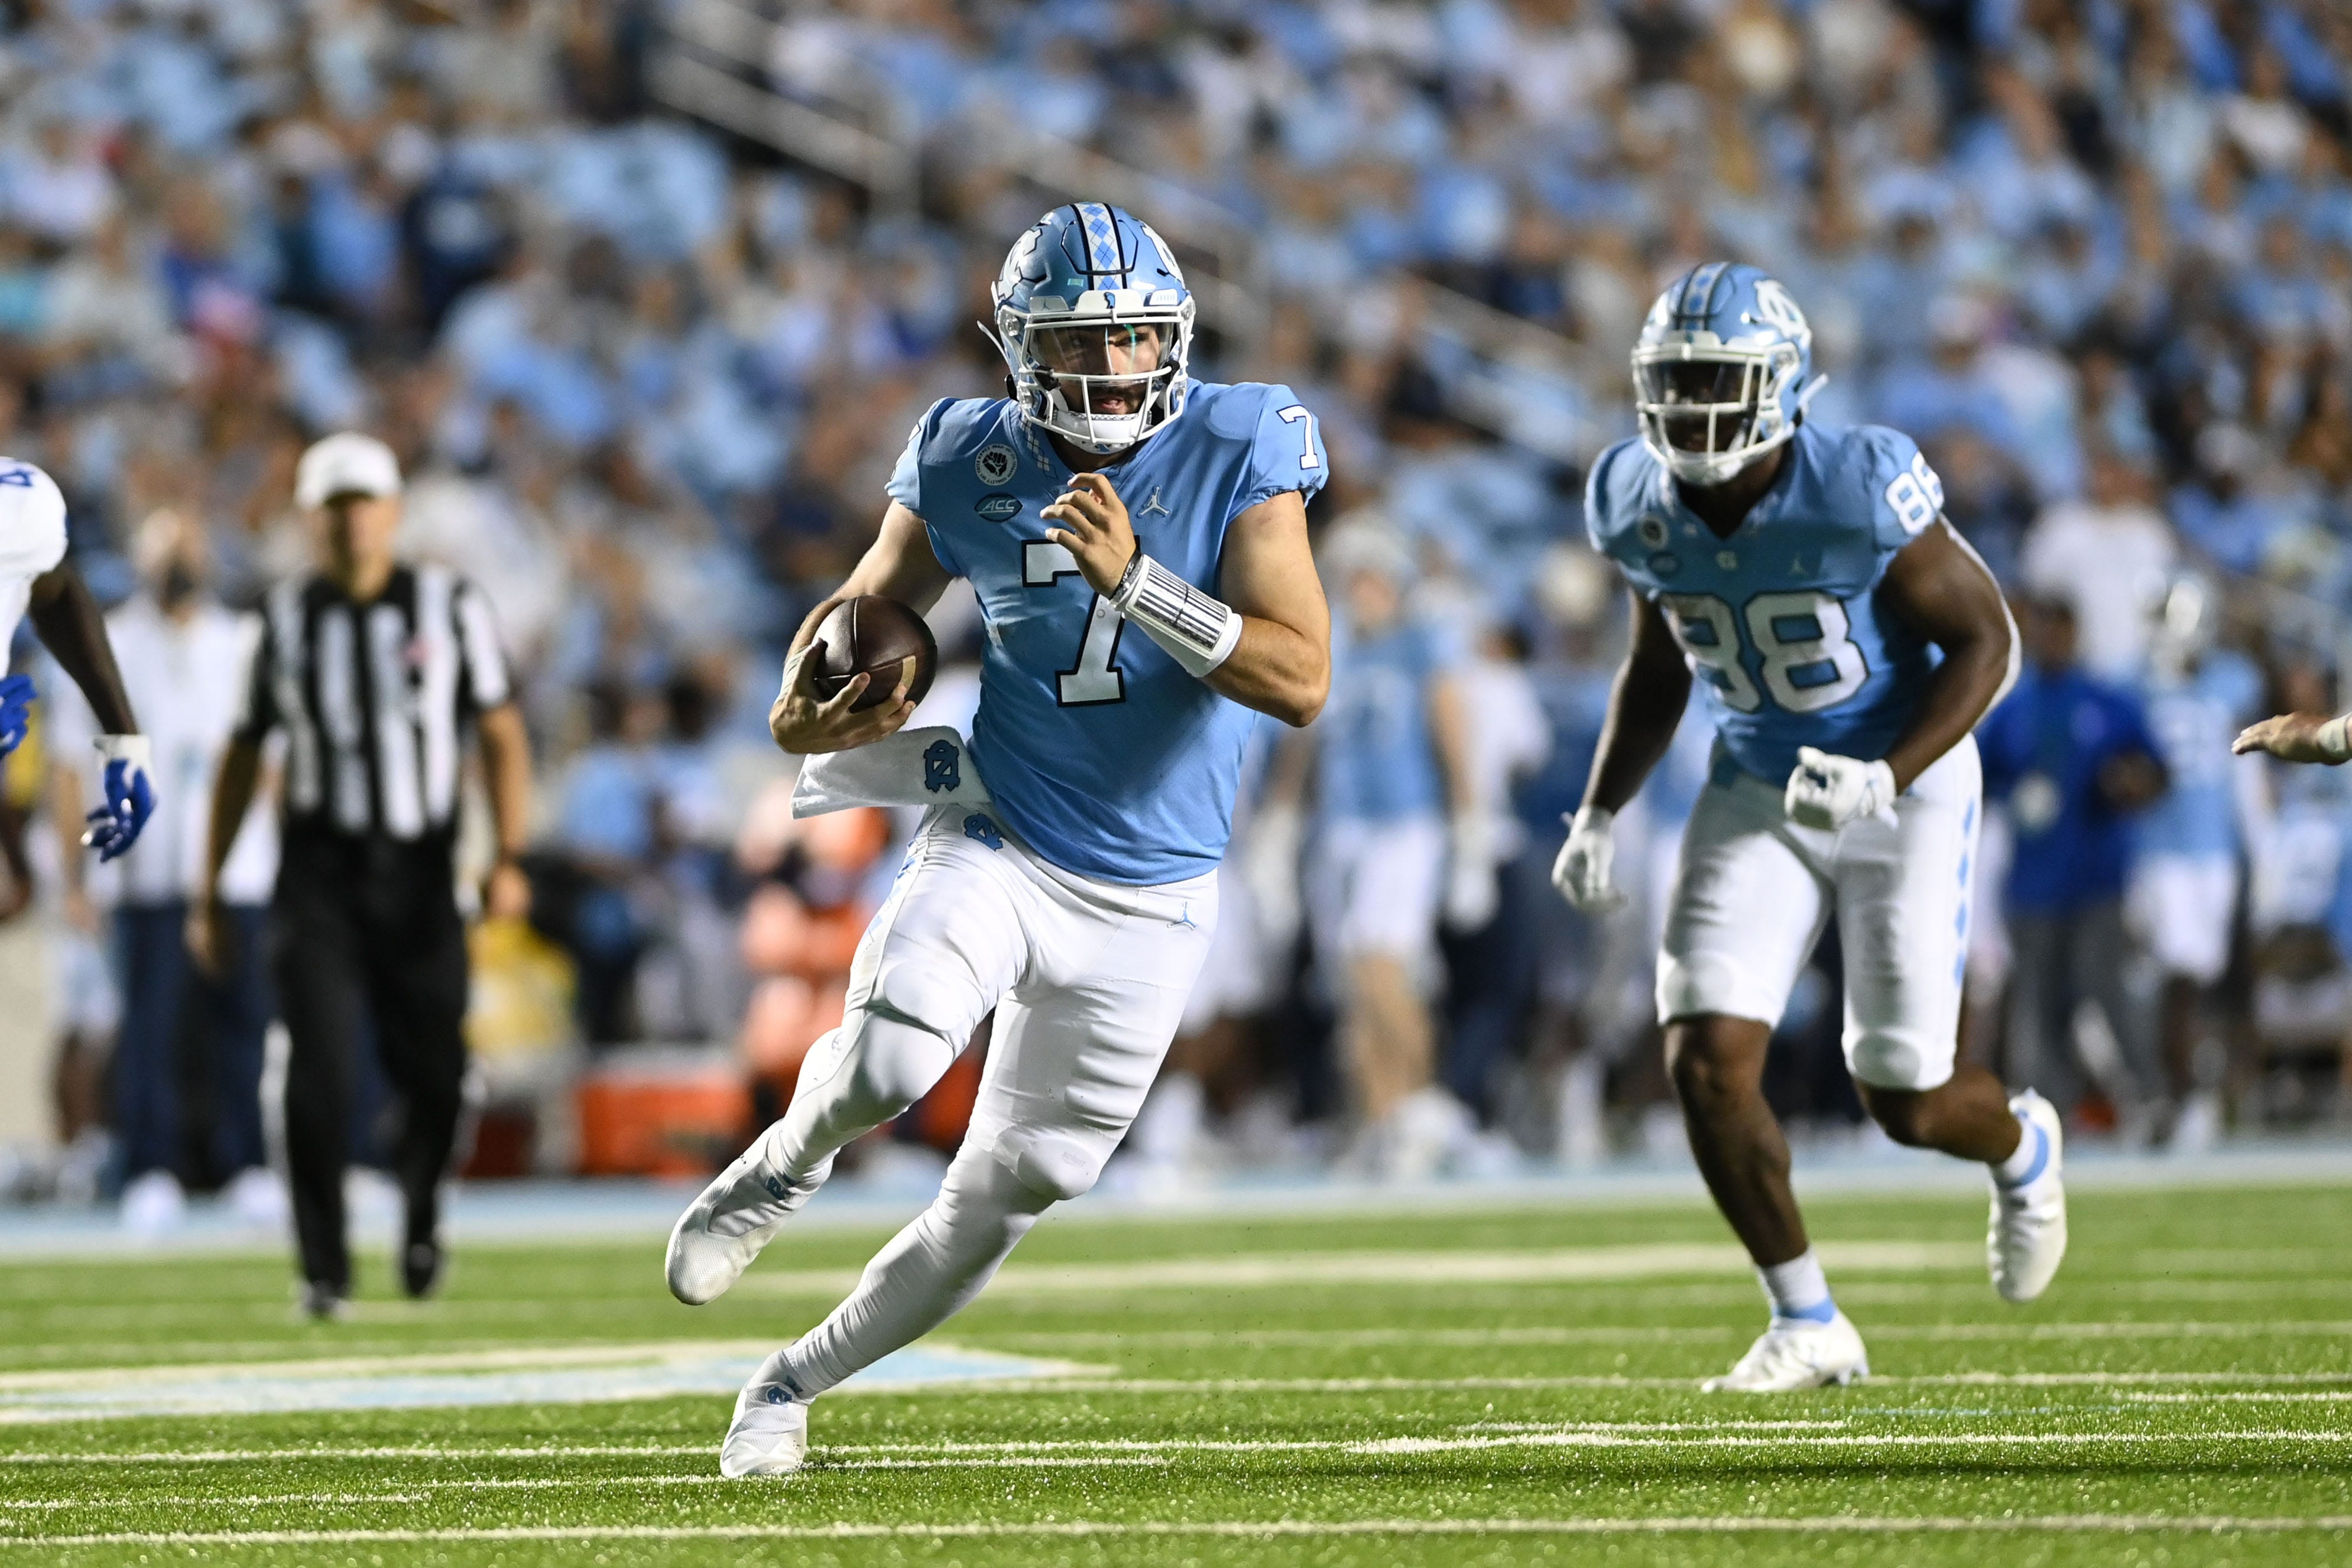 UNC football: Sam Howell field day, takeaways from Georgia State rout